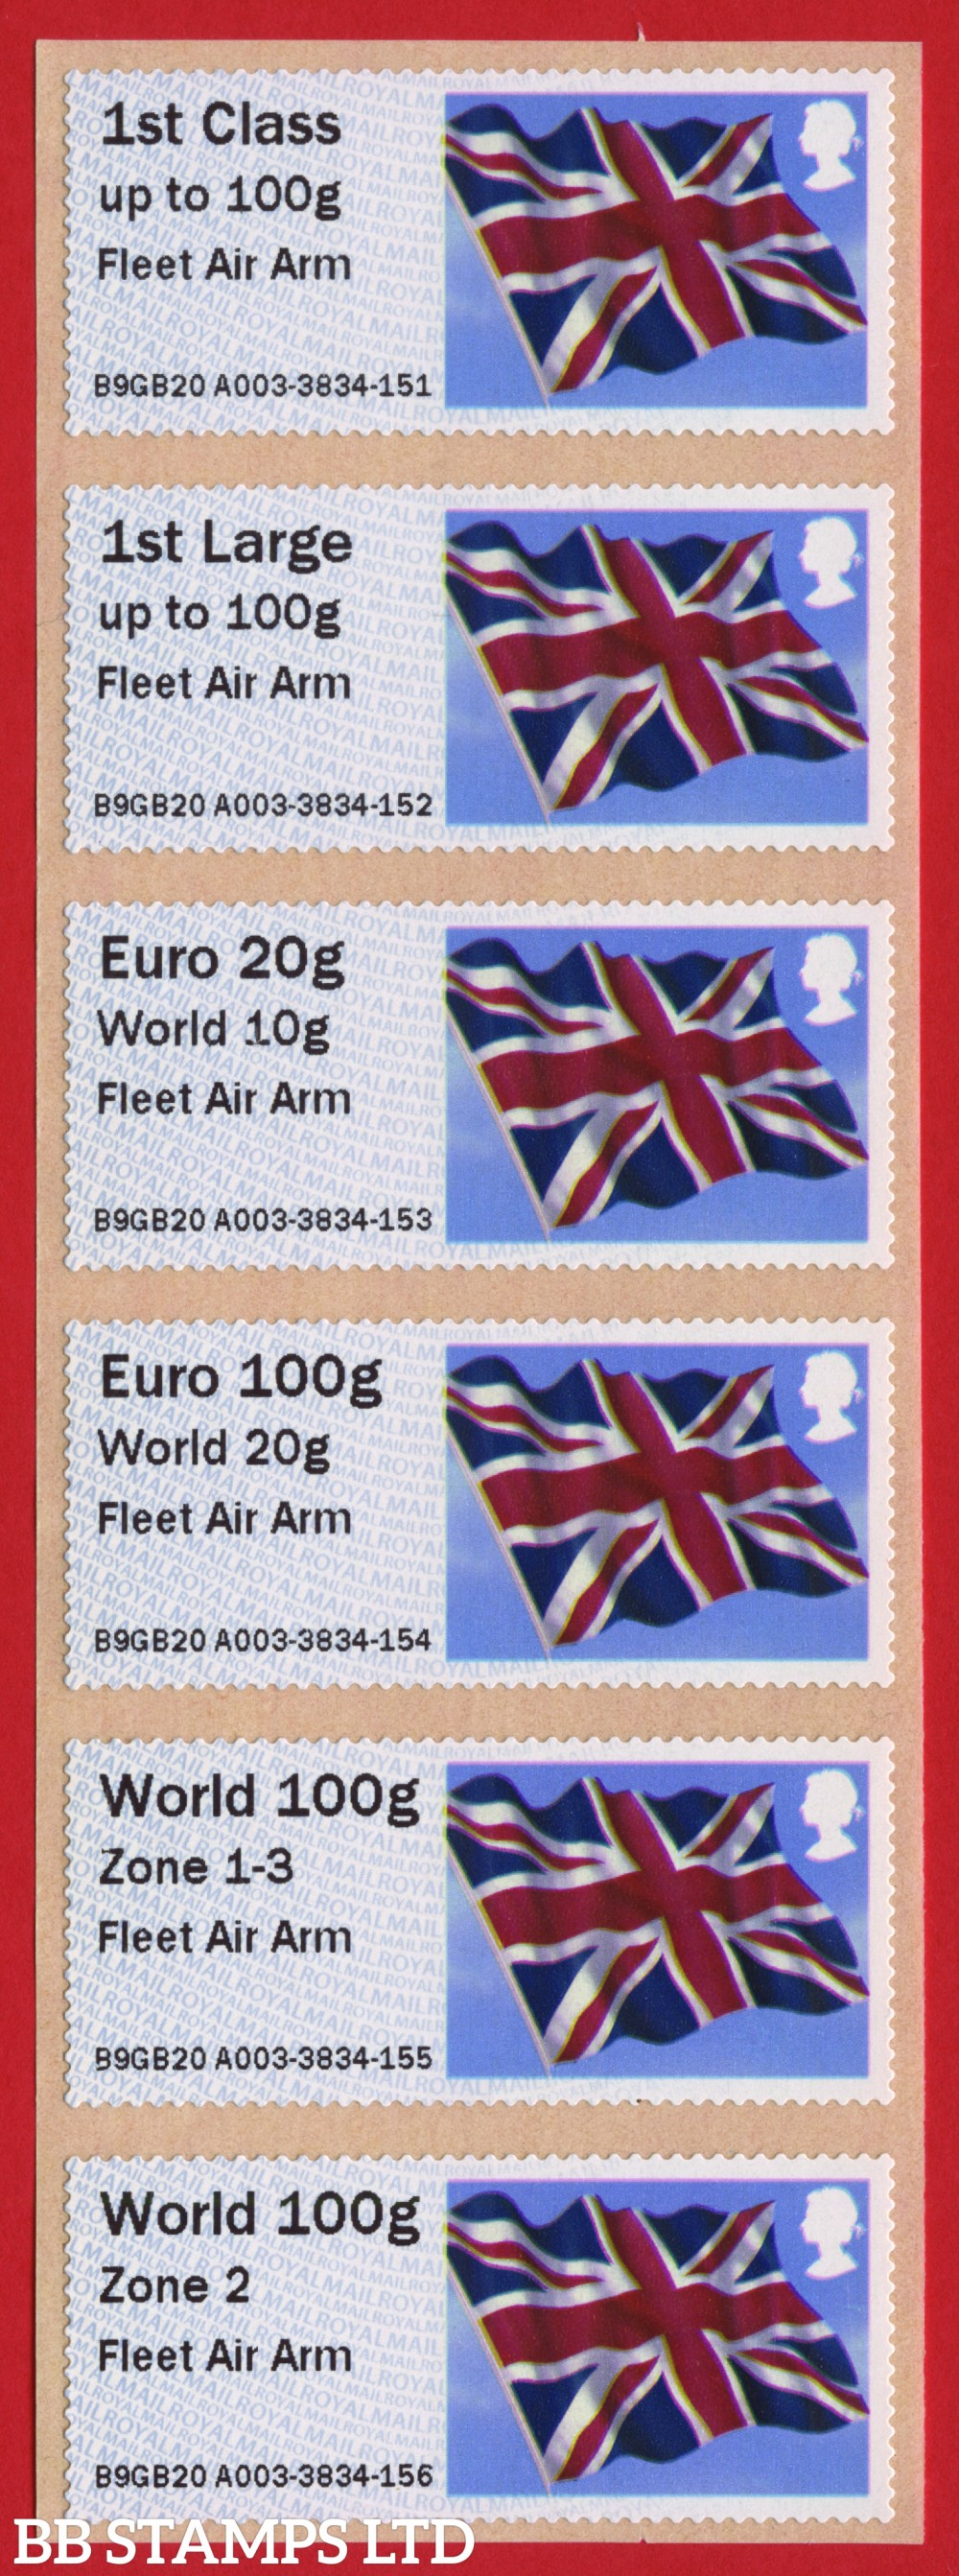 Union Flag Fleet Air Arm, with new overseas tariff stamps as issued on 01 September 2020. Set of 6, TIIIA: 1st, 1stL, Euro 20g World 10g – and new tariff Euro 100g World 20g/World 100g Zone 1-3/World Zone 2 stamps: NO YEAR CODE (BK30 P2)